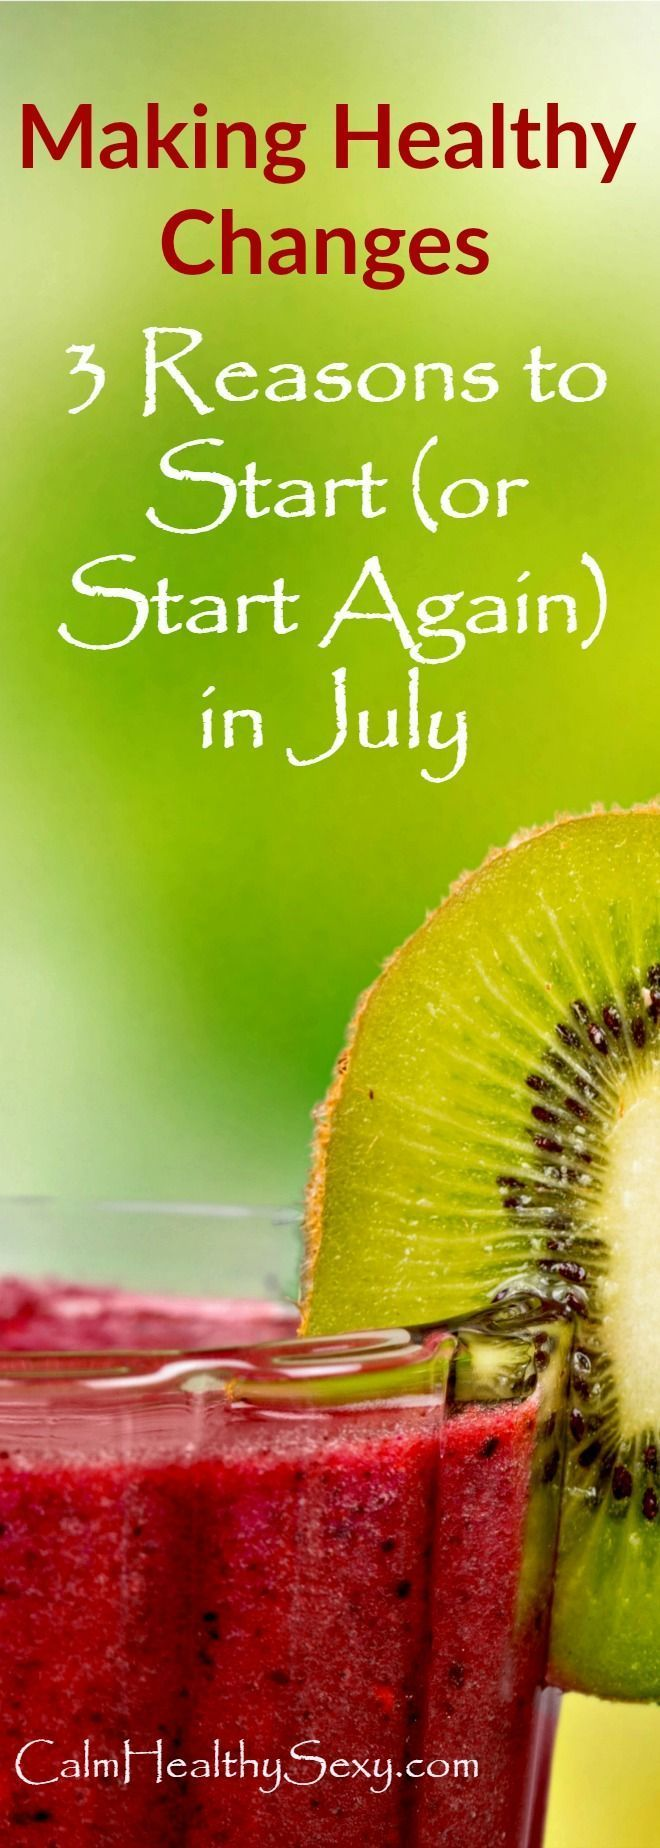 July is the perfect time to make healthy changes in your life, whether you're just getting started,...